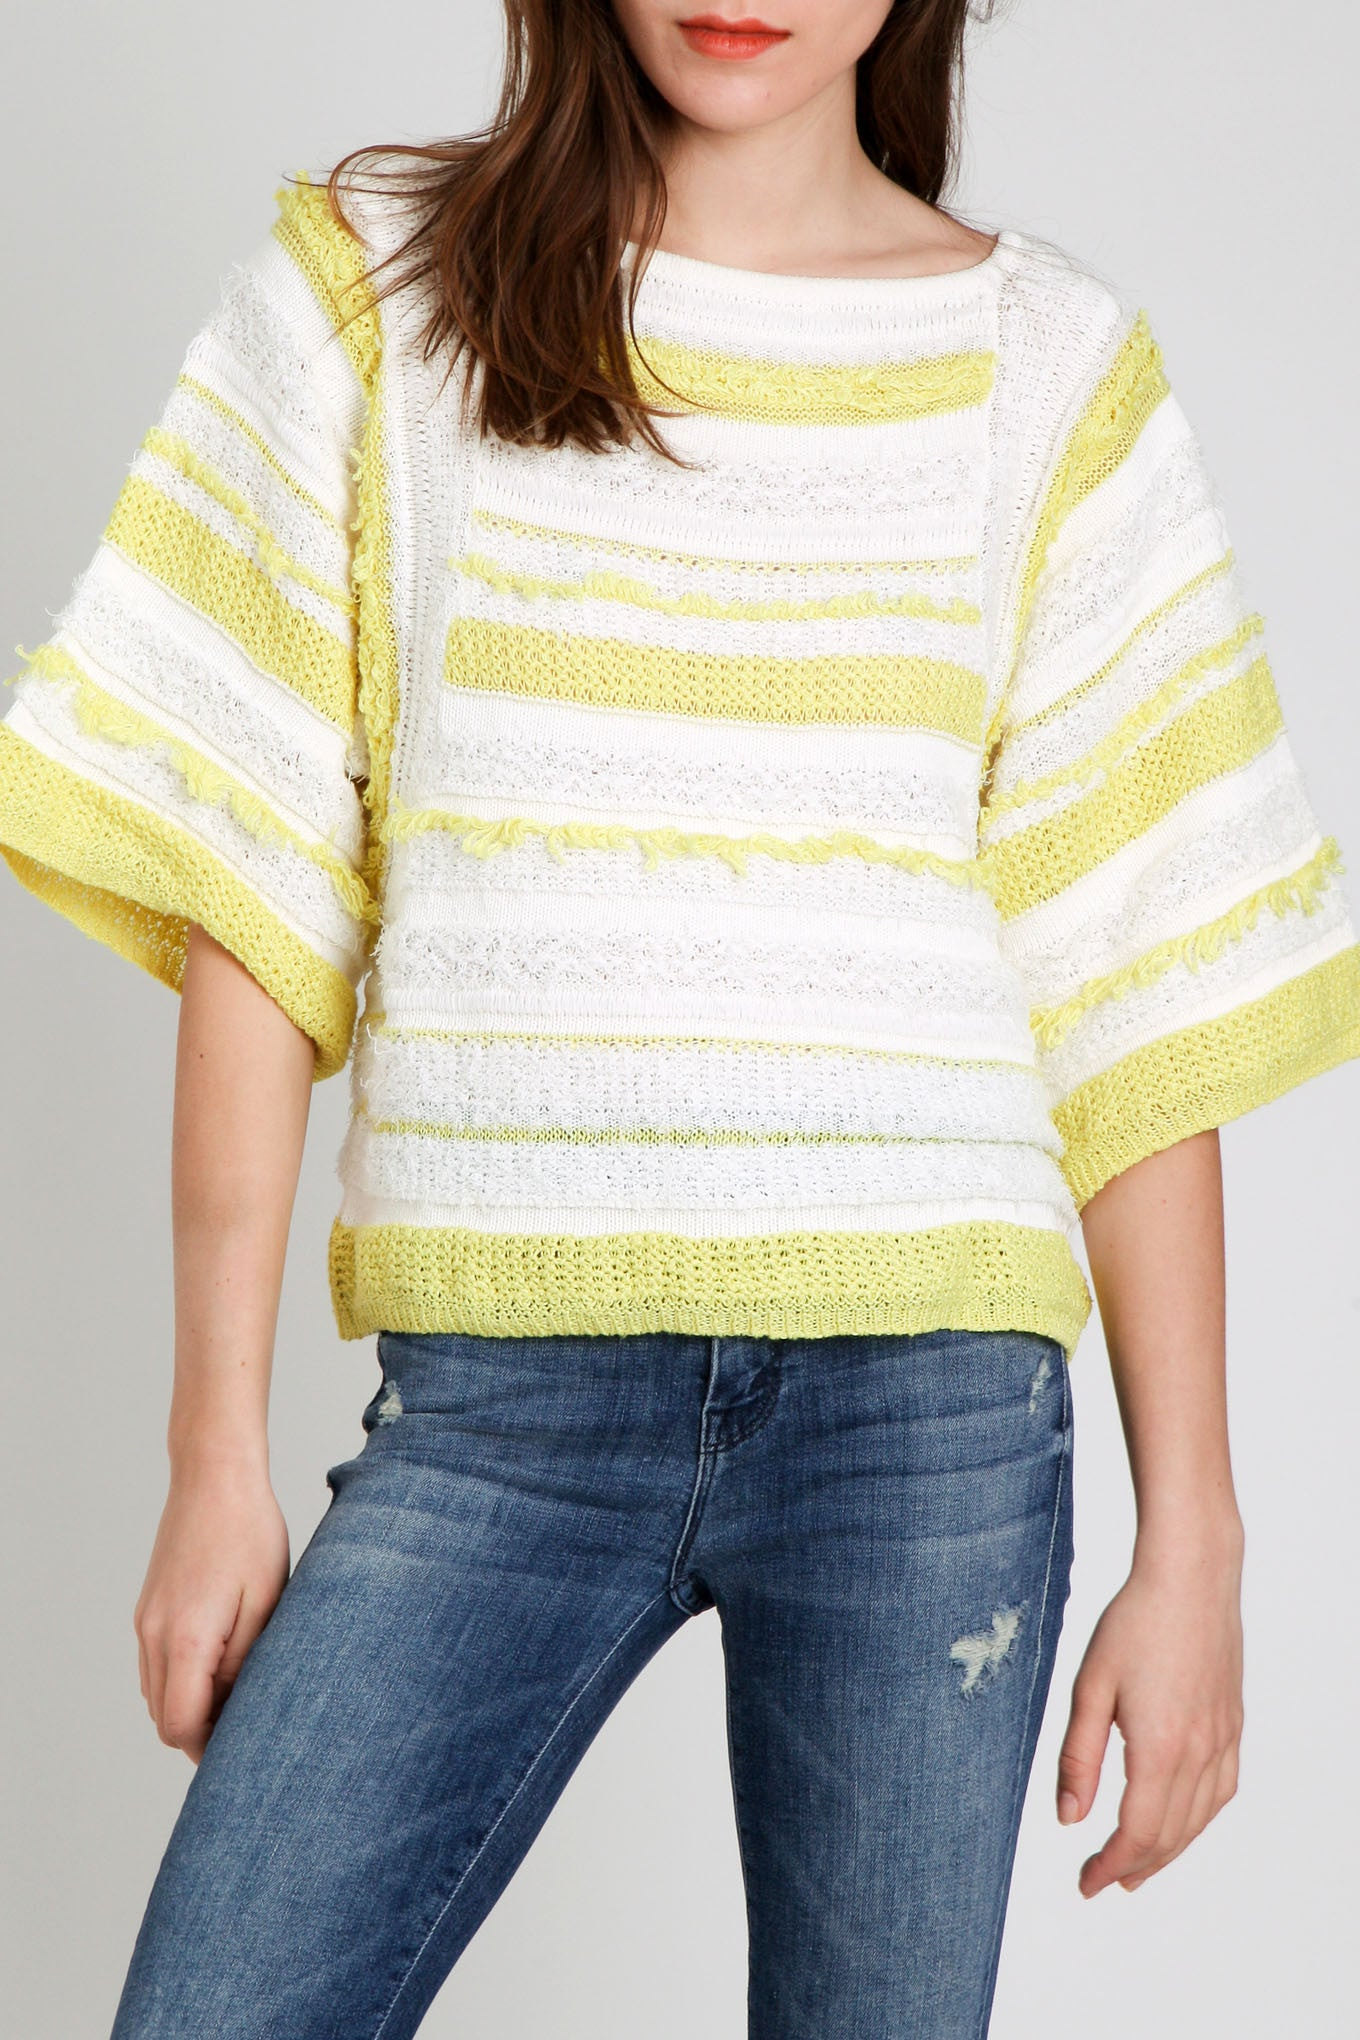 Sita Murt / Yellow & White Sweater